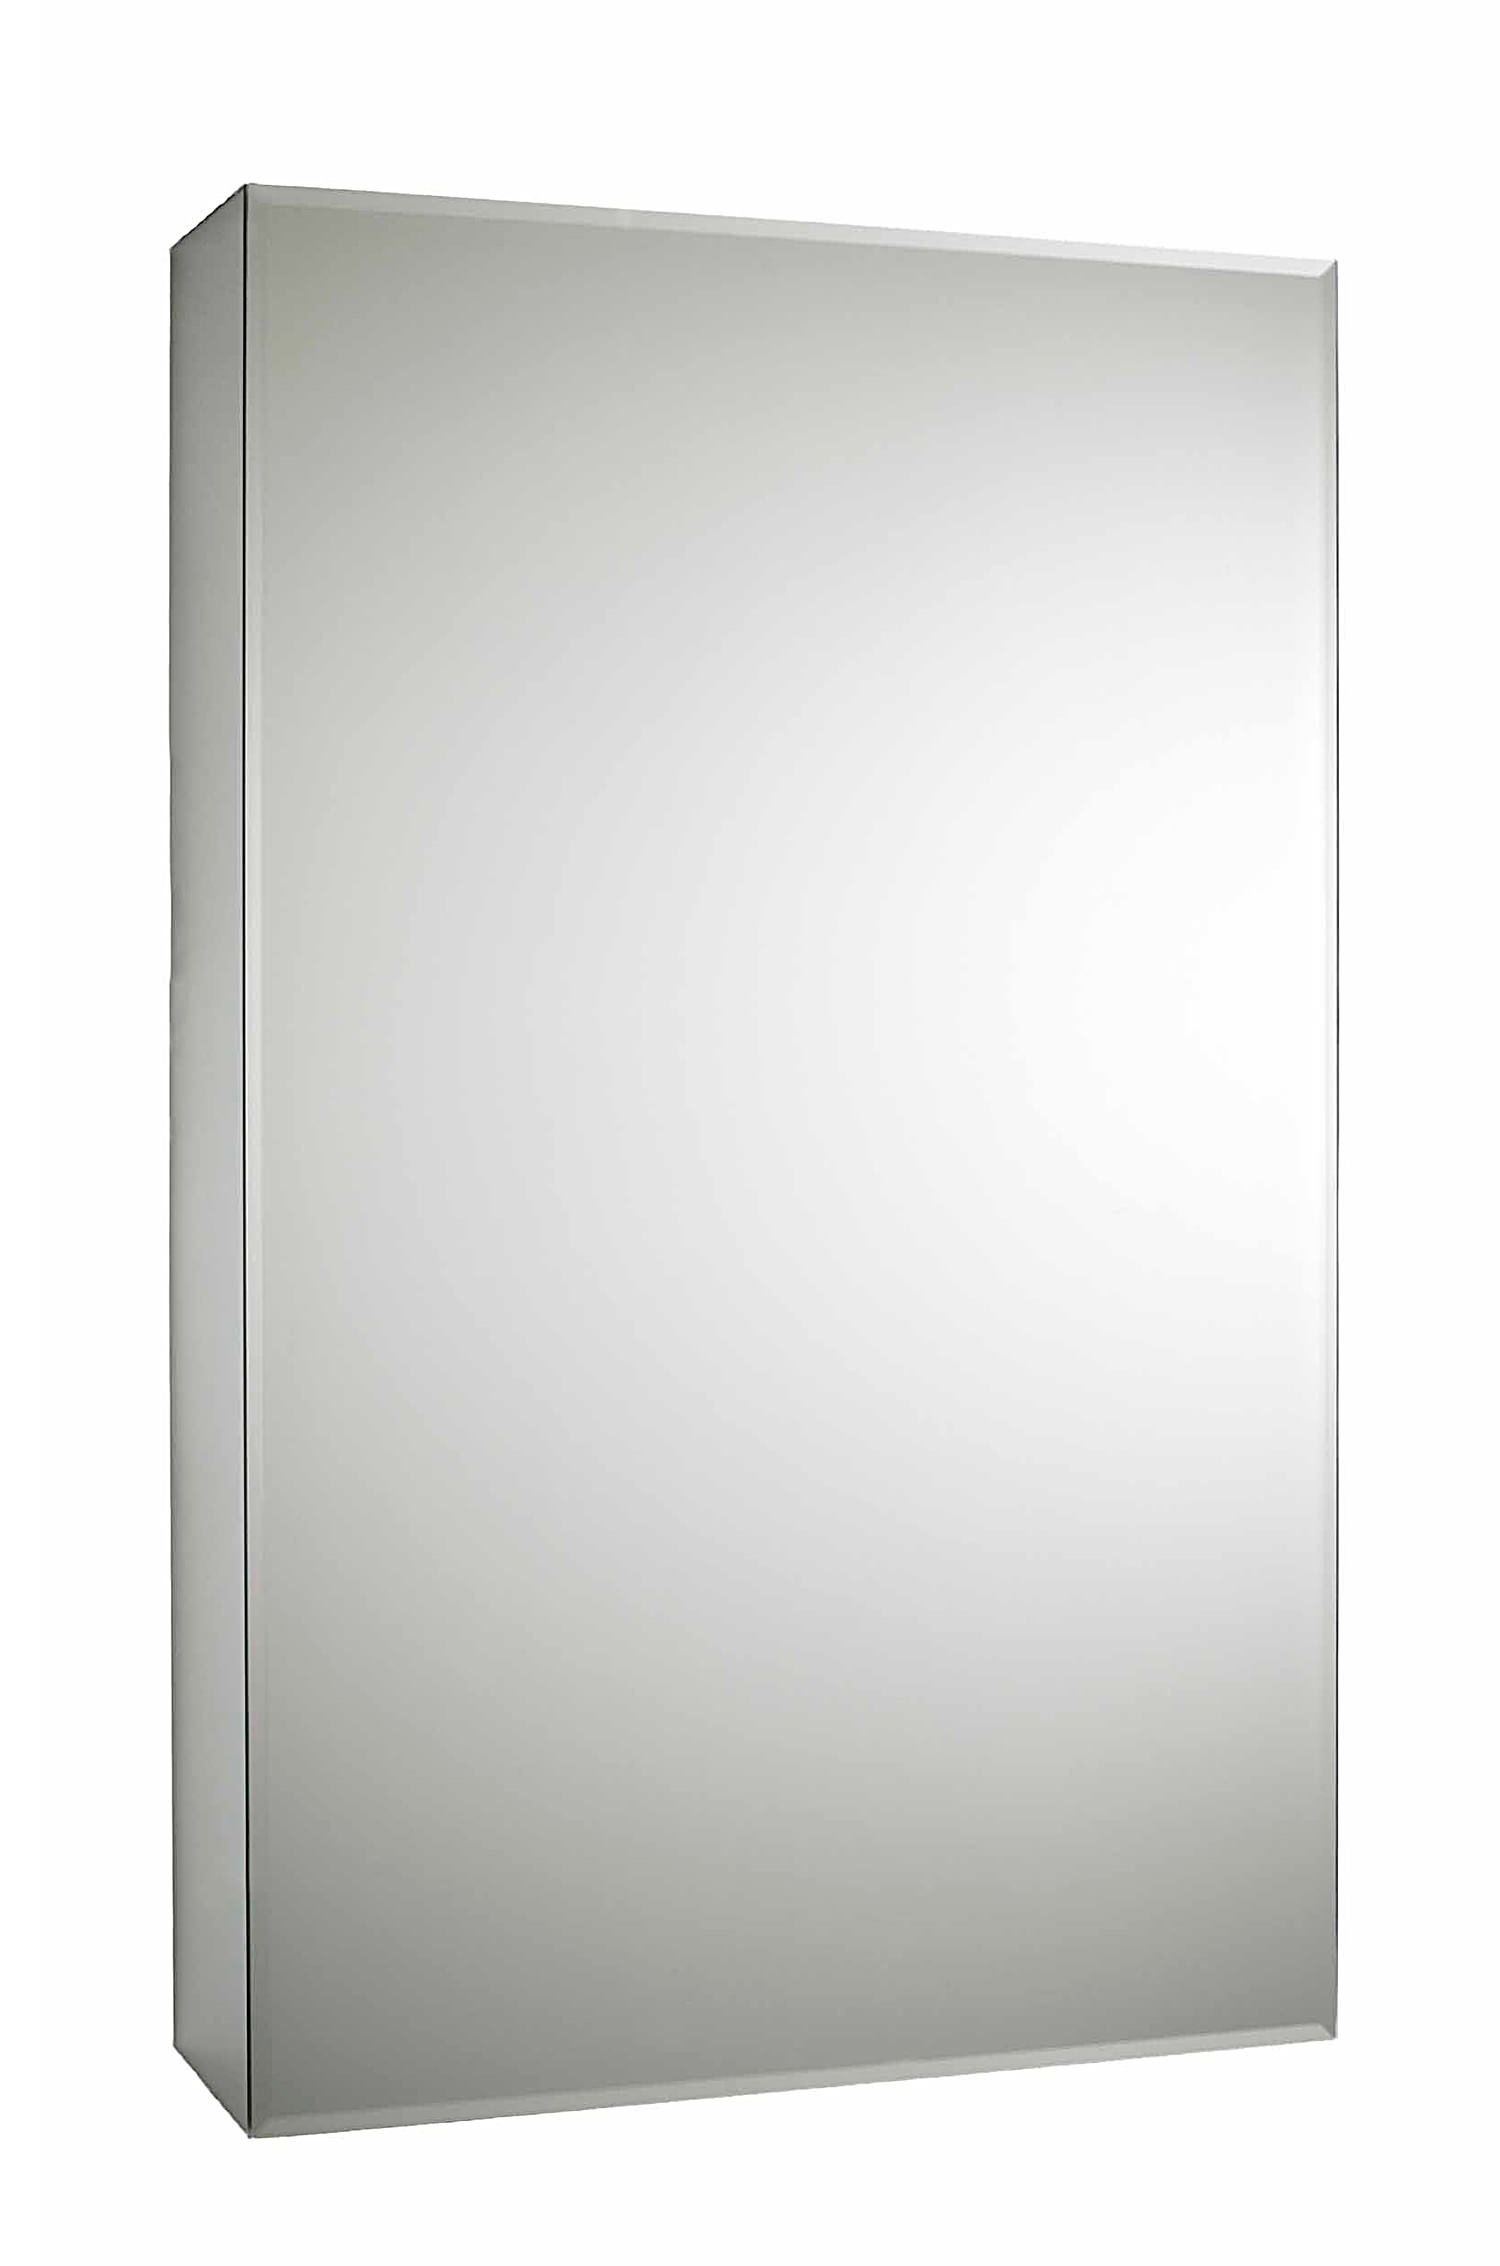 Lauren intrigue side opening mirrored cabinet 460 x 750mm for Bathroom cabinets 400mm